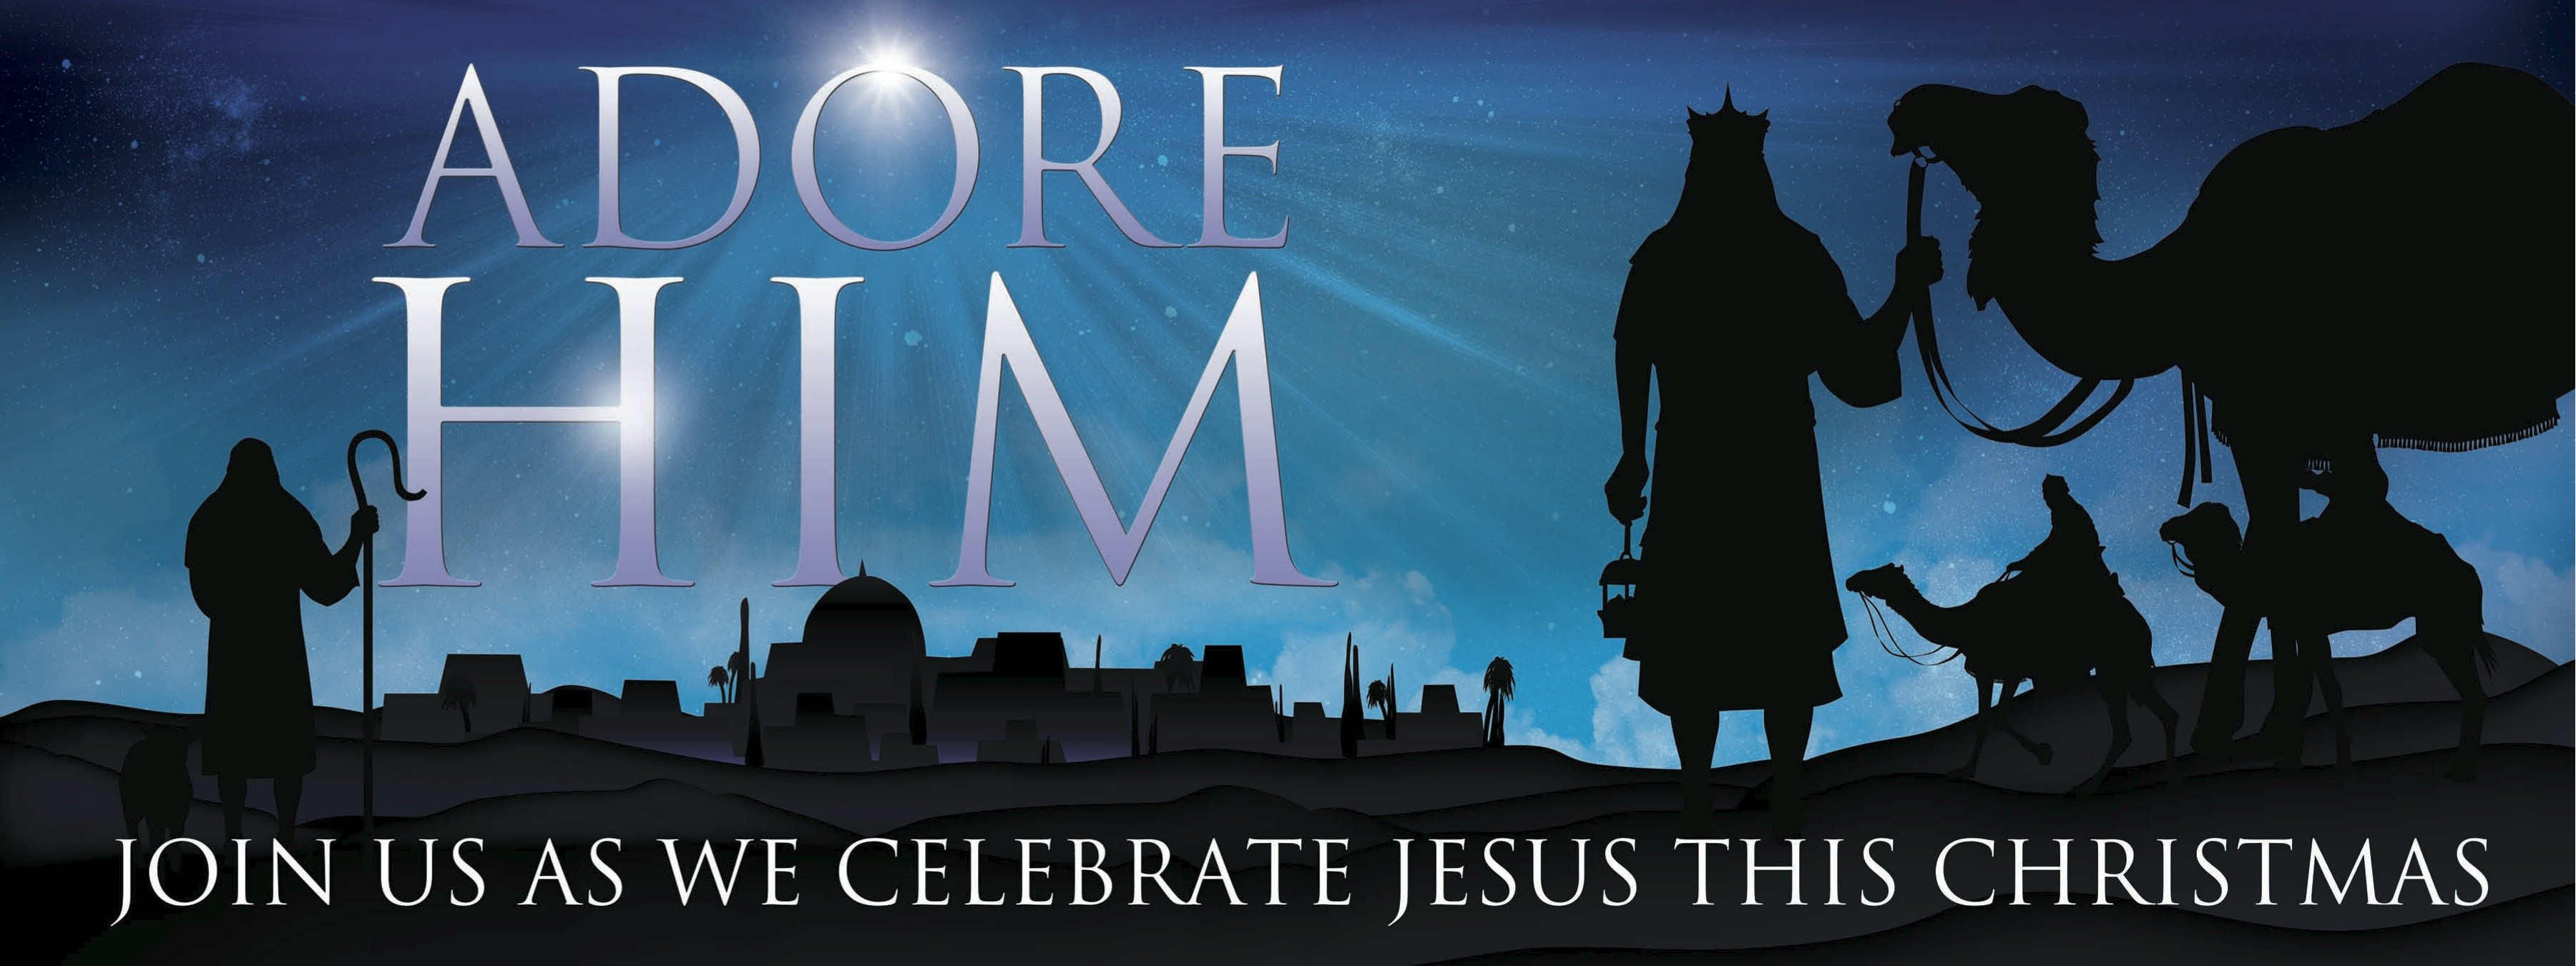 Christmas Nativity Facebook Banners (20)